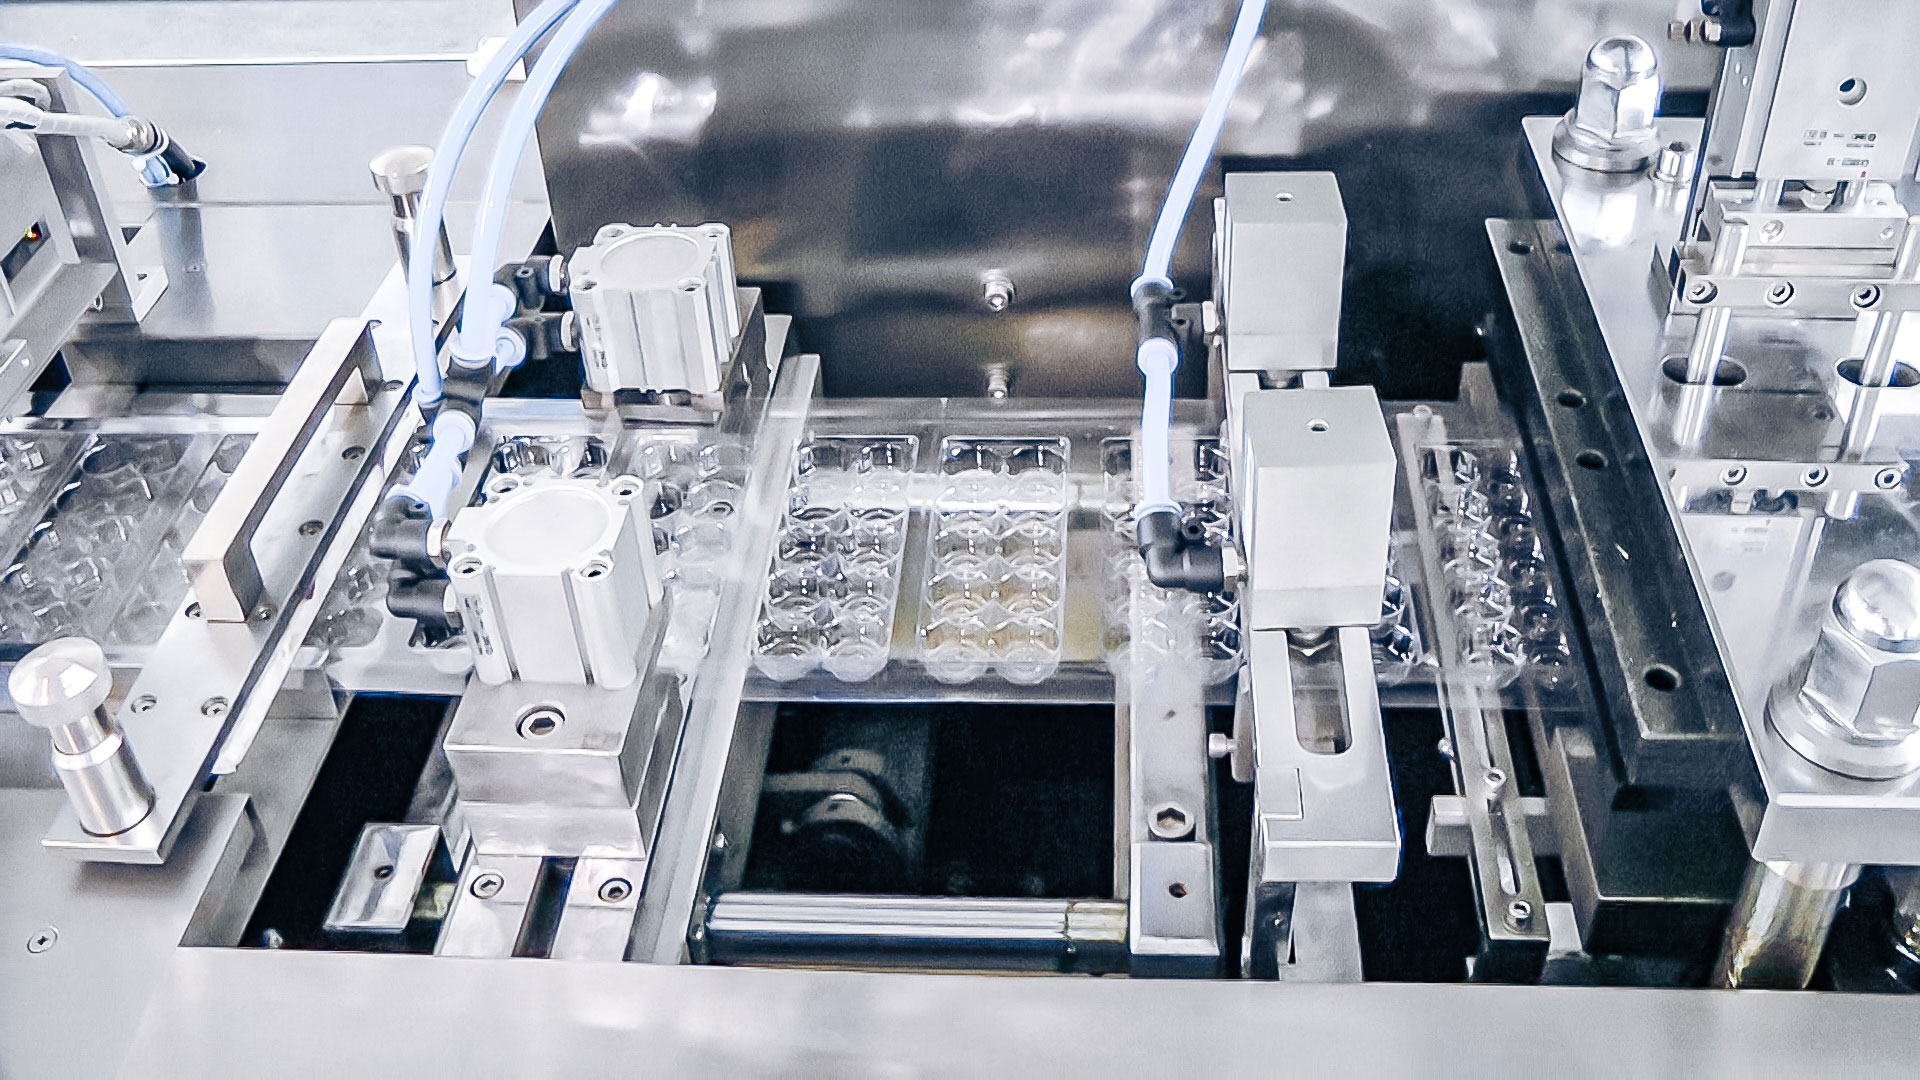 Automatic equipment for packing penicillin vials into plastic blisters in pharmaceutical production